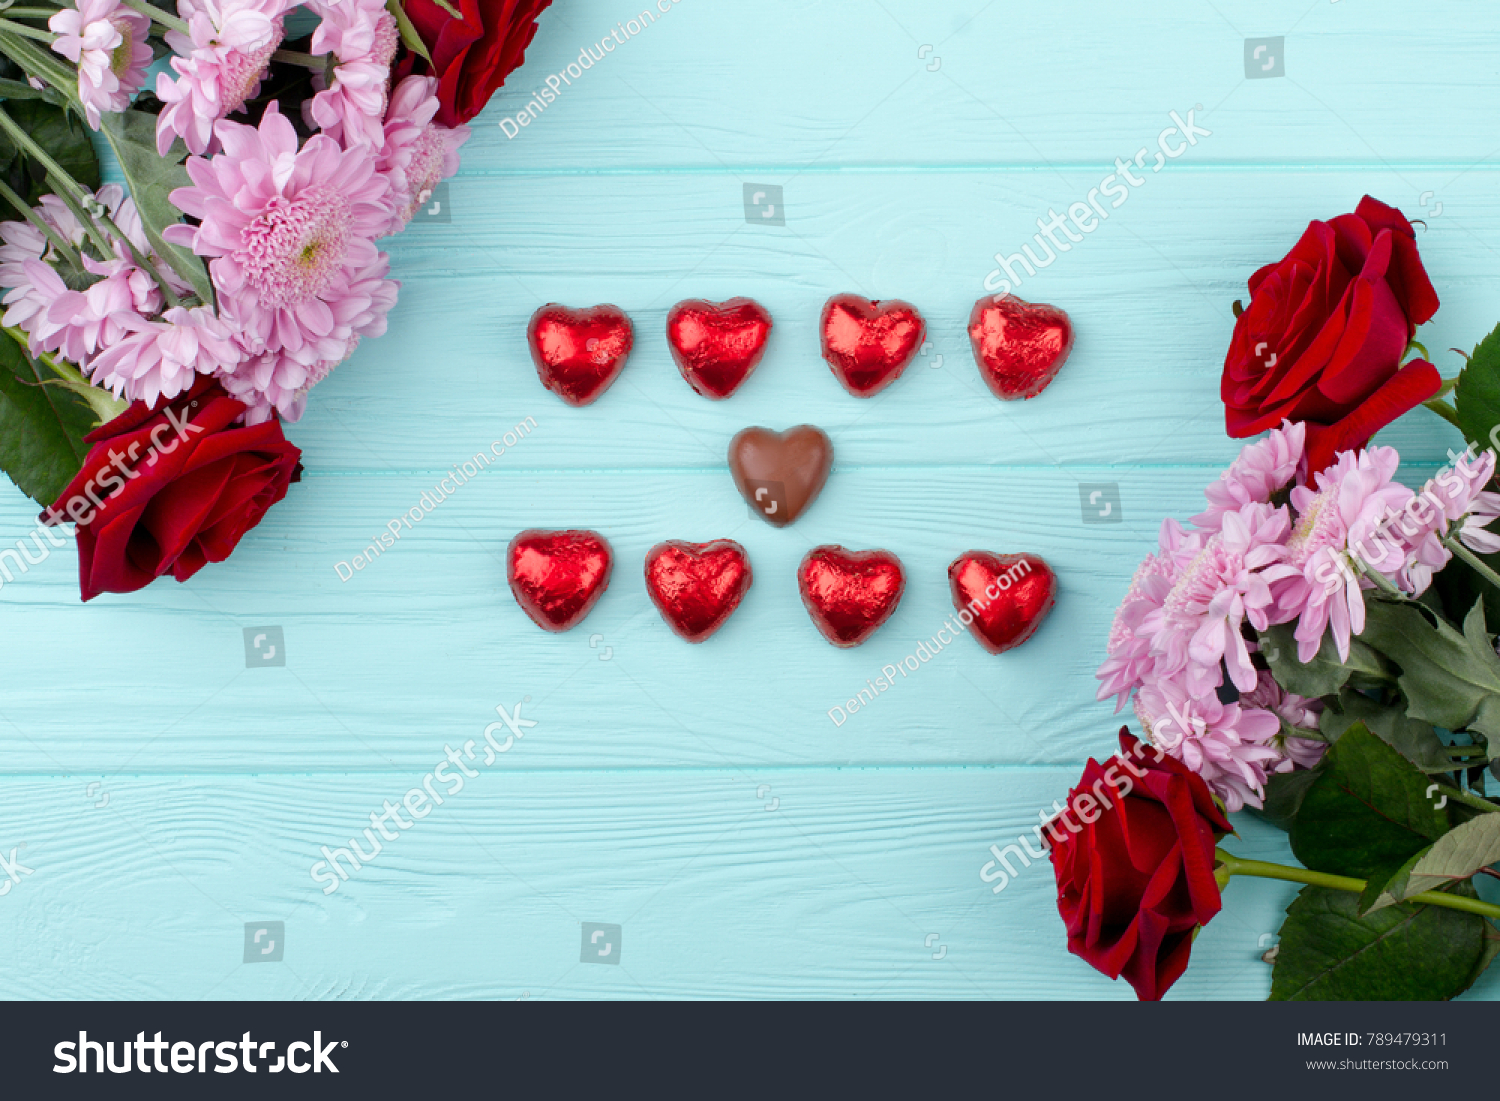 Beautiful Flowers Heart Shaped Chocolate Valentines Stock Photo